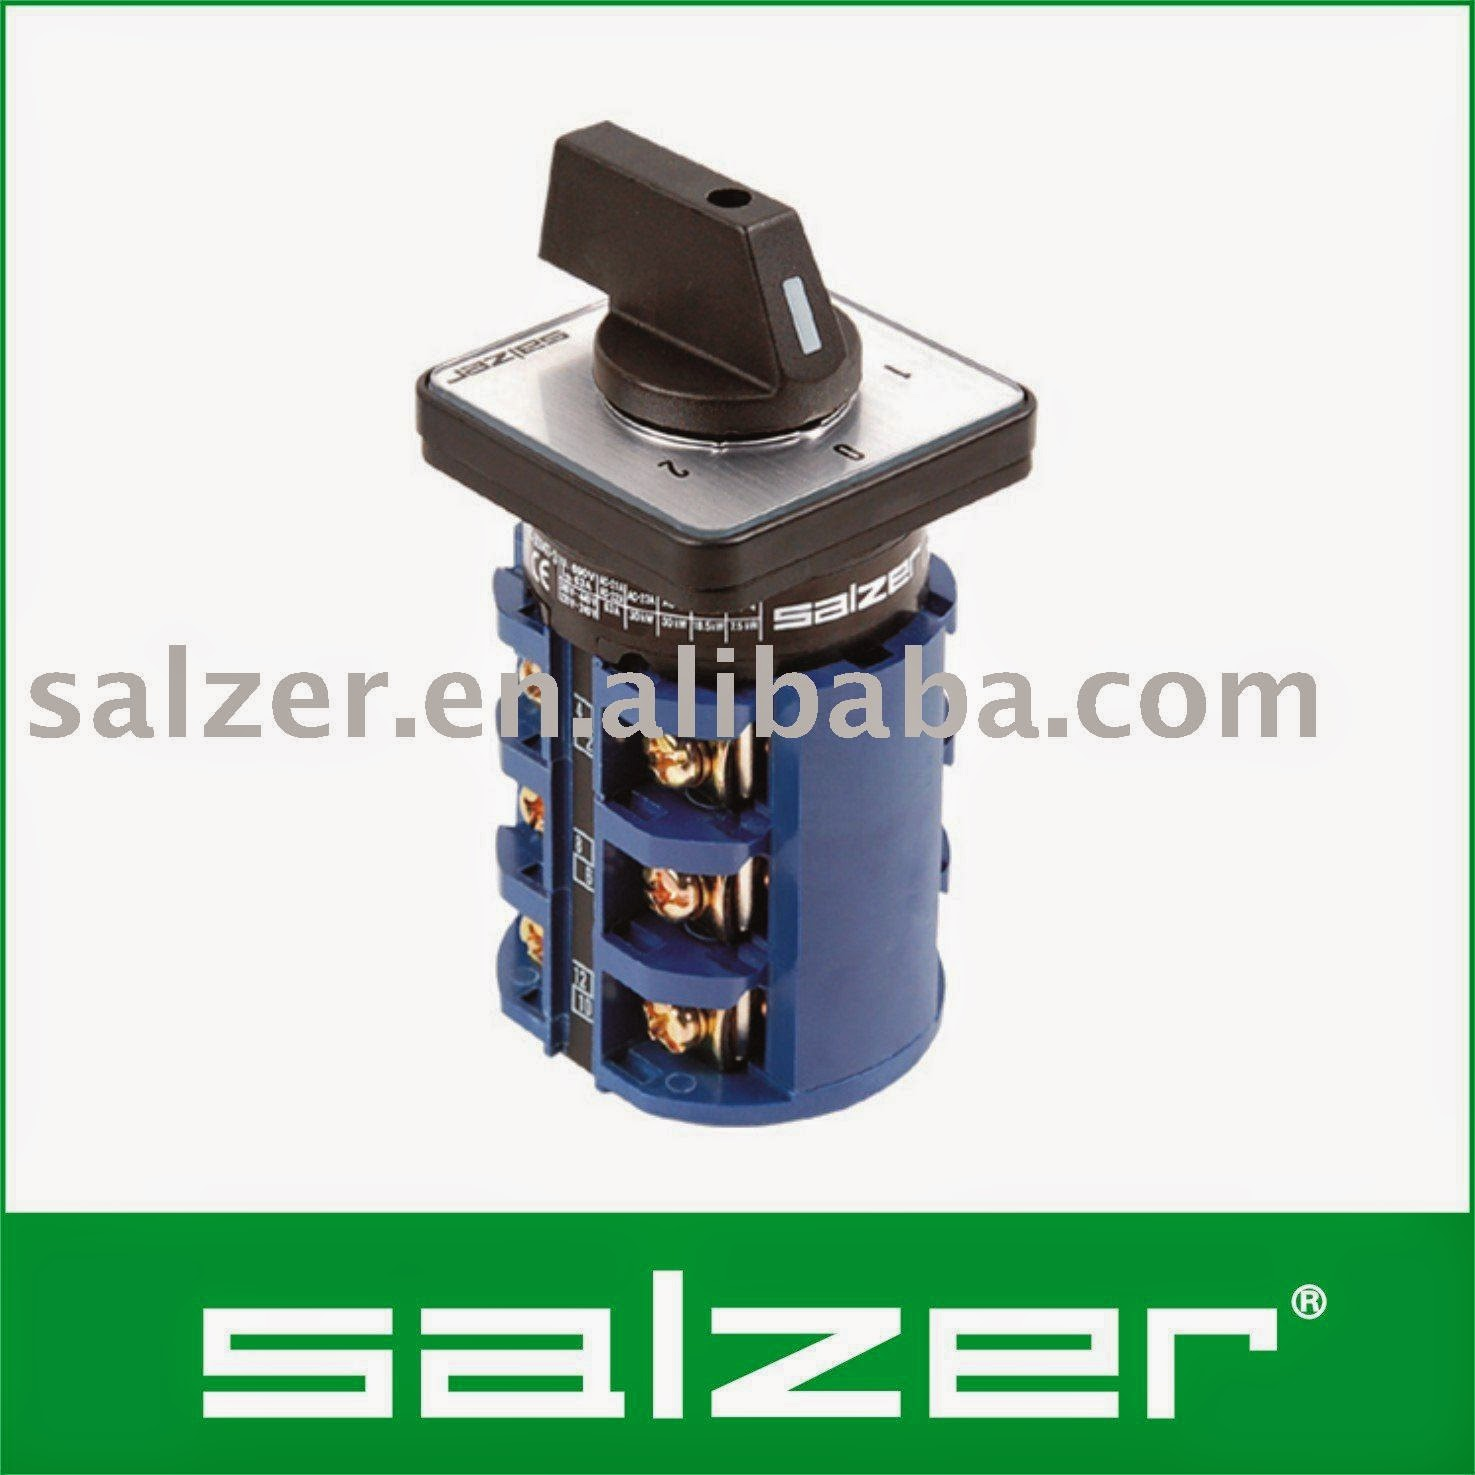 Salzer Drum Switch Switches Wiring Diagram Reversing Control Toggle Square D Get Free